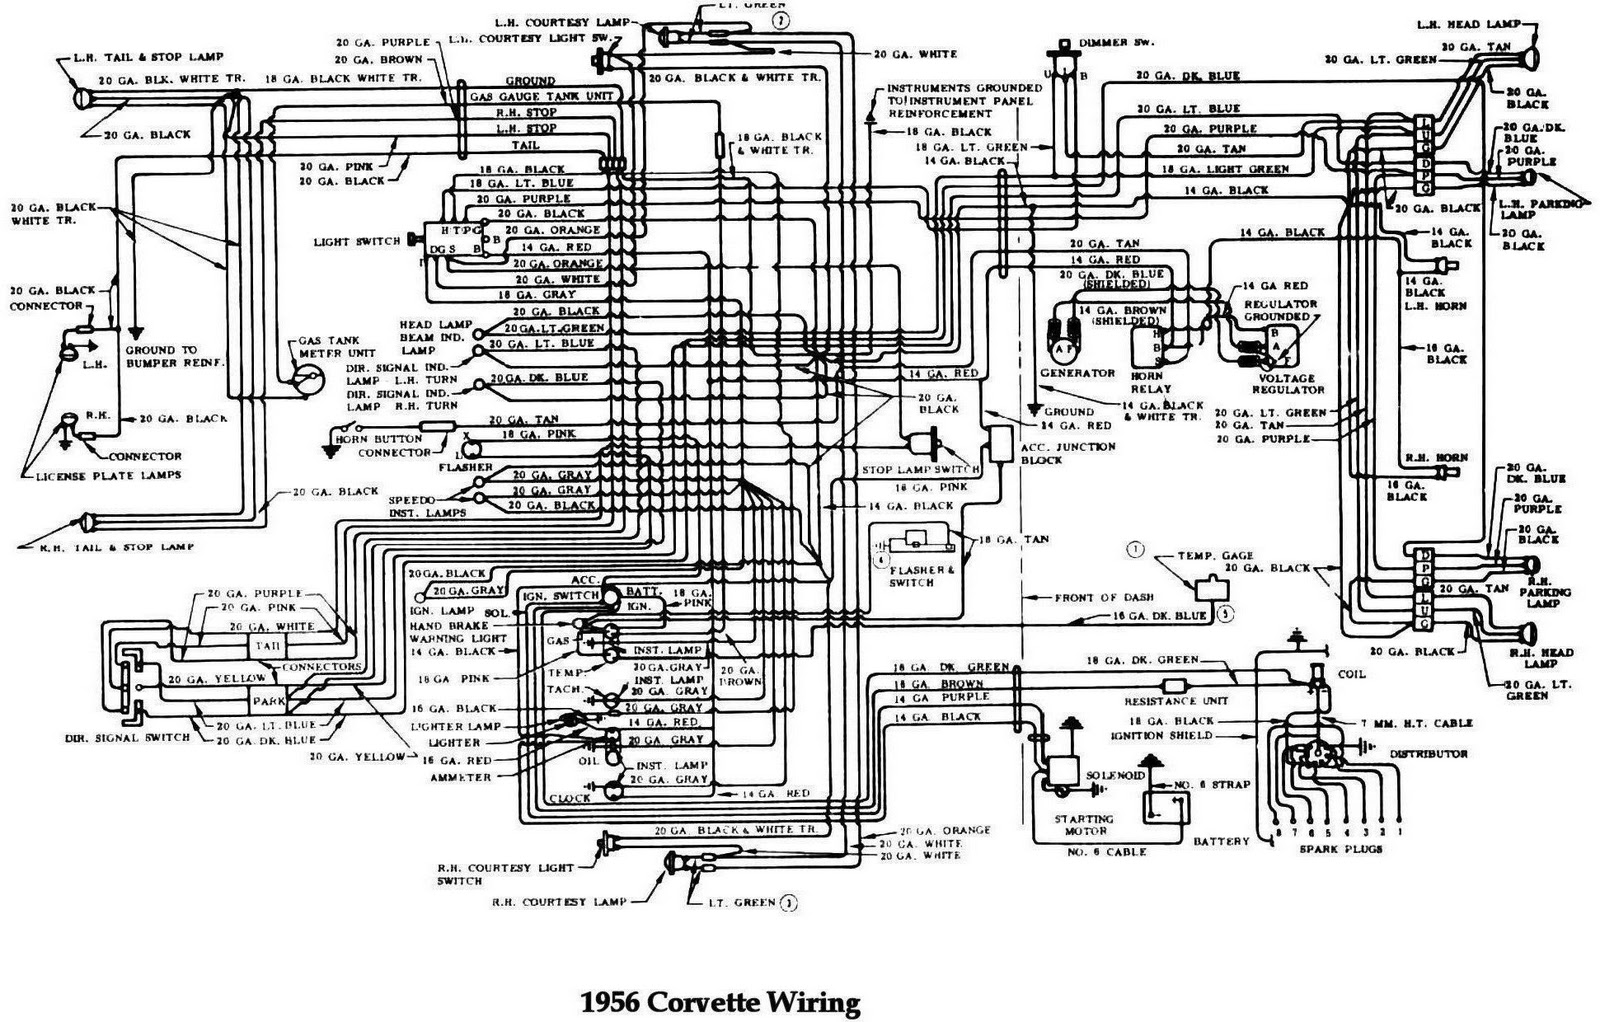 1974 corvette wiring diagram photos